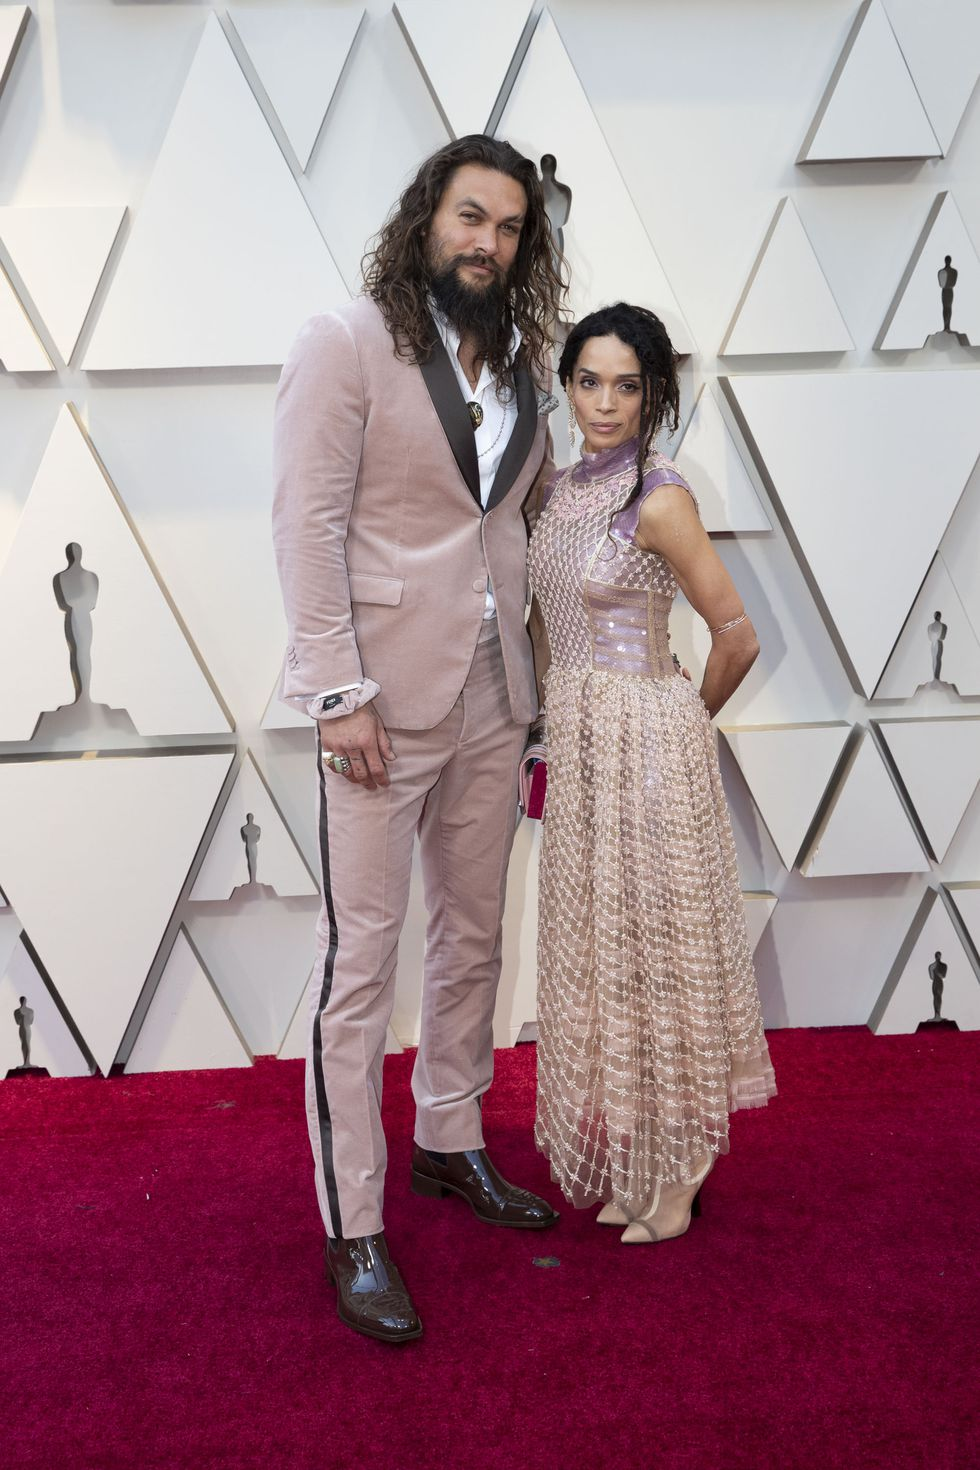 the-91st-oscars-broadcasts-live-on-sunday-feb-24-at-the-news-photo-1127207635-1551058659.jpg